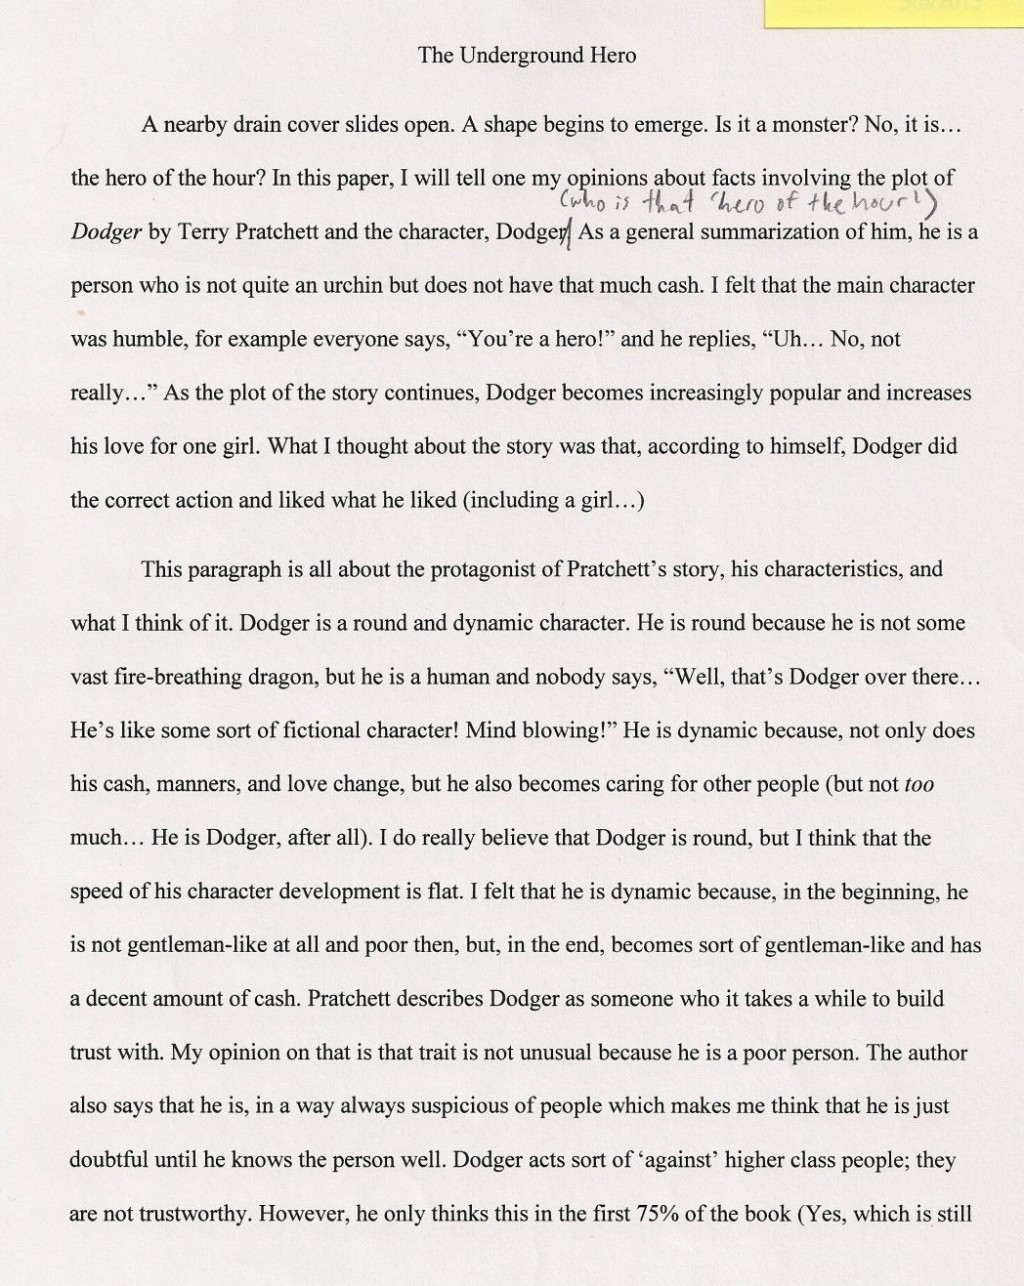 006 My Hero Essays On Heroes Good Writing What To Write Argumentative About The Undergro Should I 1048x1317 Staggering Essay Examples Superhero Mom Unsung Large